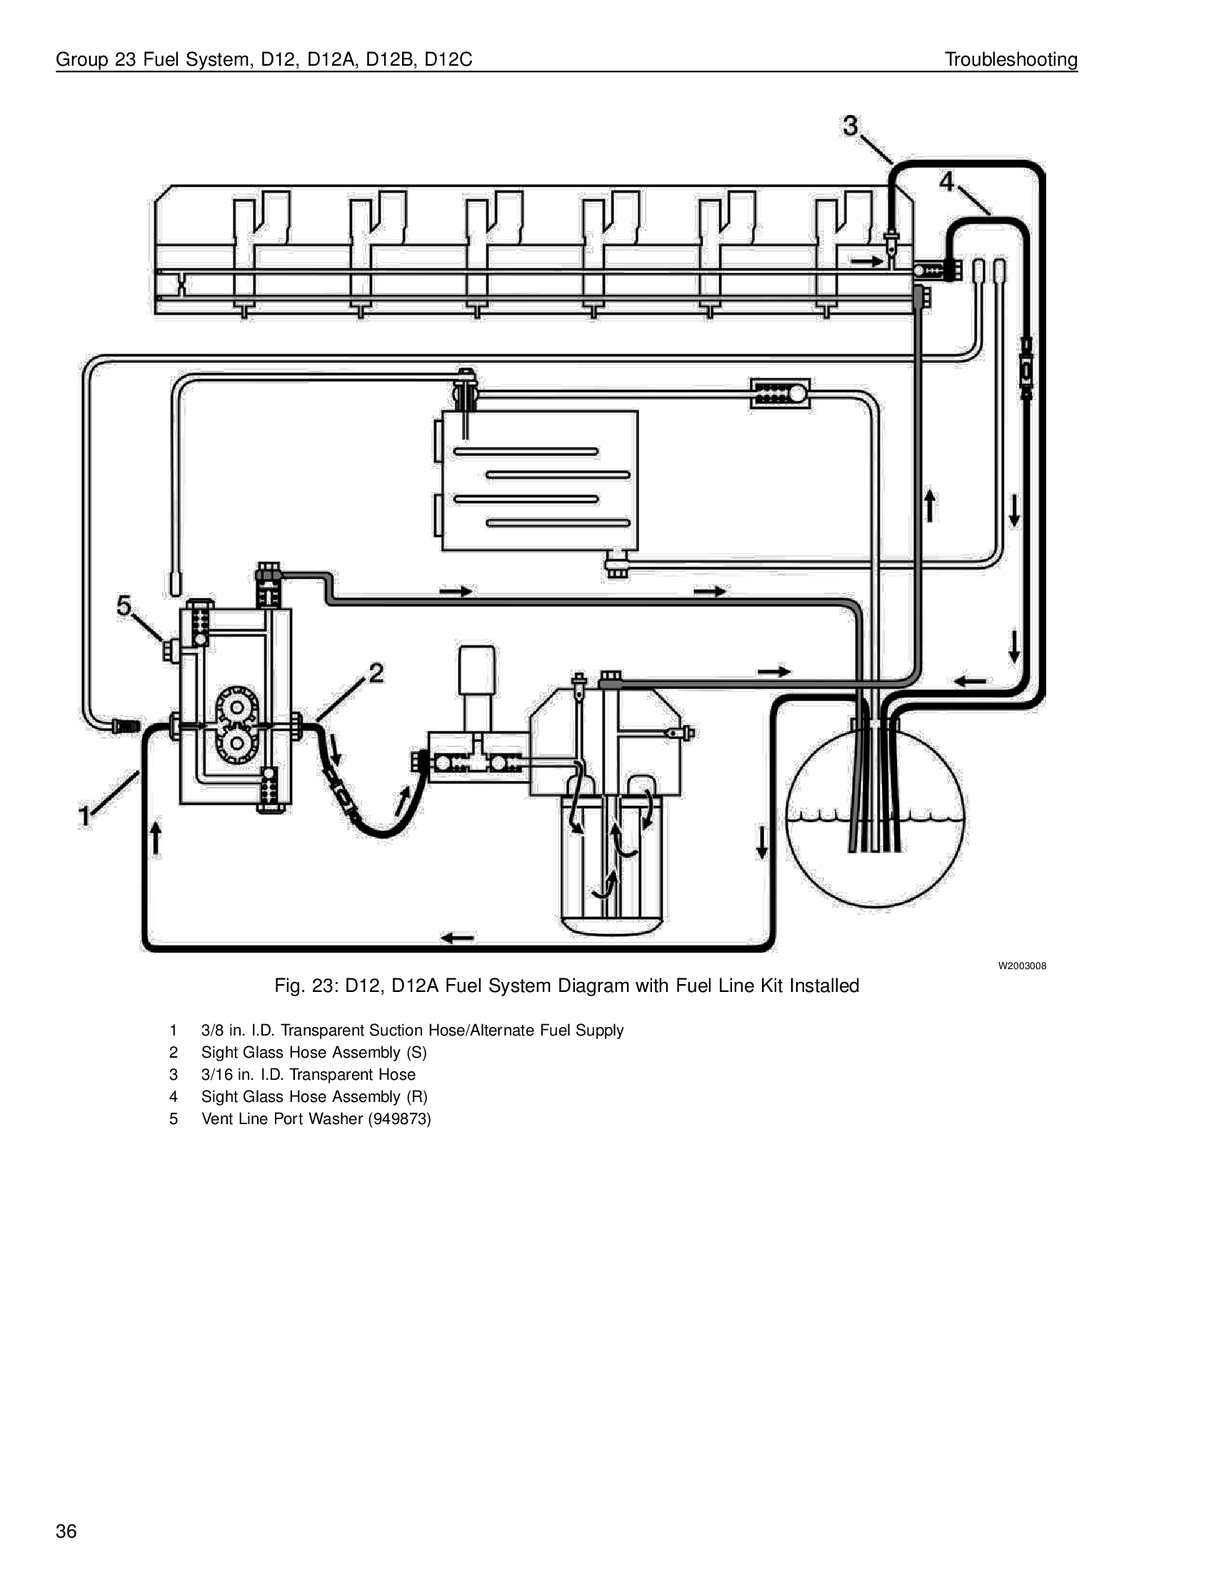 Volvo D12 Engine Diagram Auto Electrical Wiring. Related With Volvo D12 Engine Diagram. Volvo. Volvo D12 Engine Fuel Diagram At Scoala.co